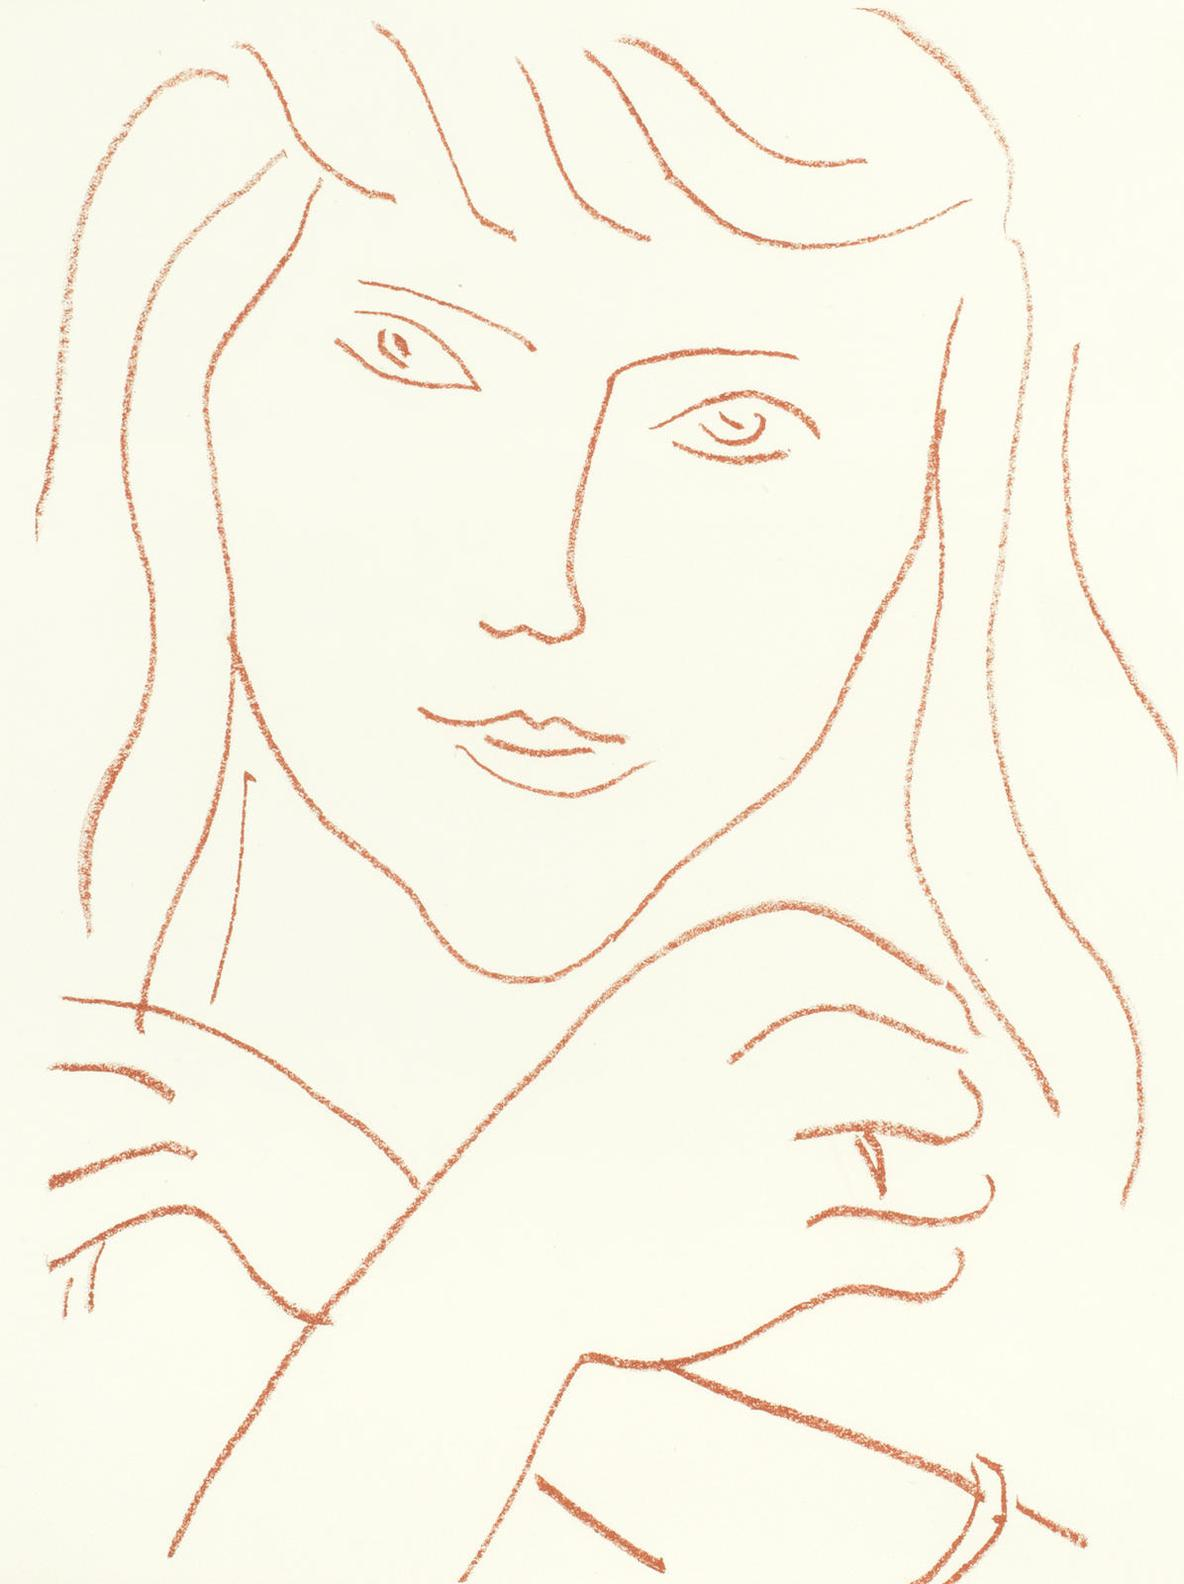 Henri Matisse-Two Plates, From Visages - Quartorze Lithographies-1946